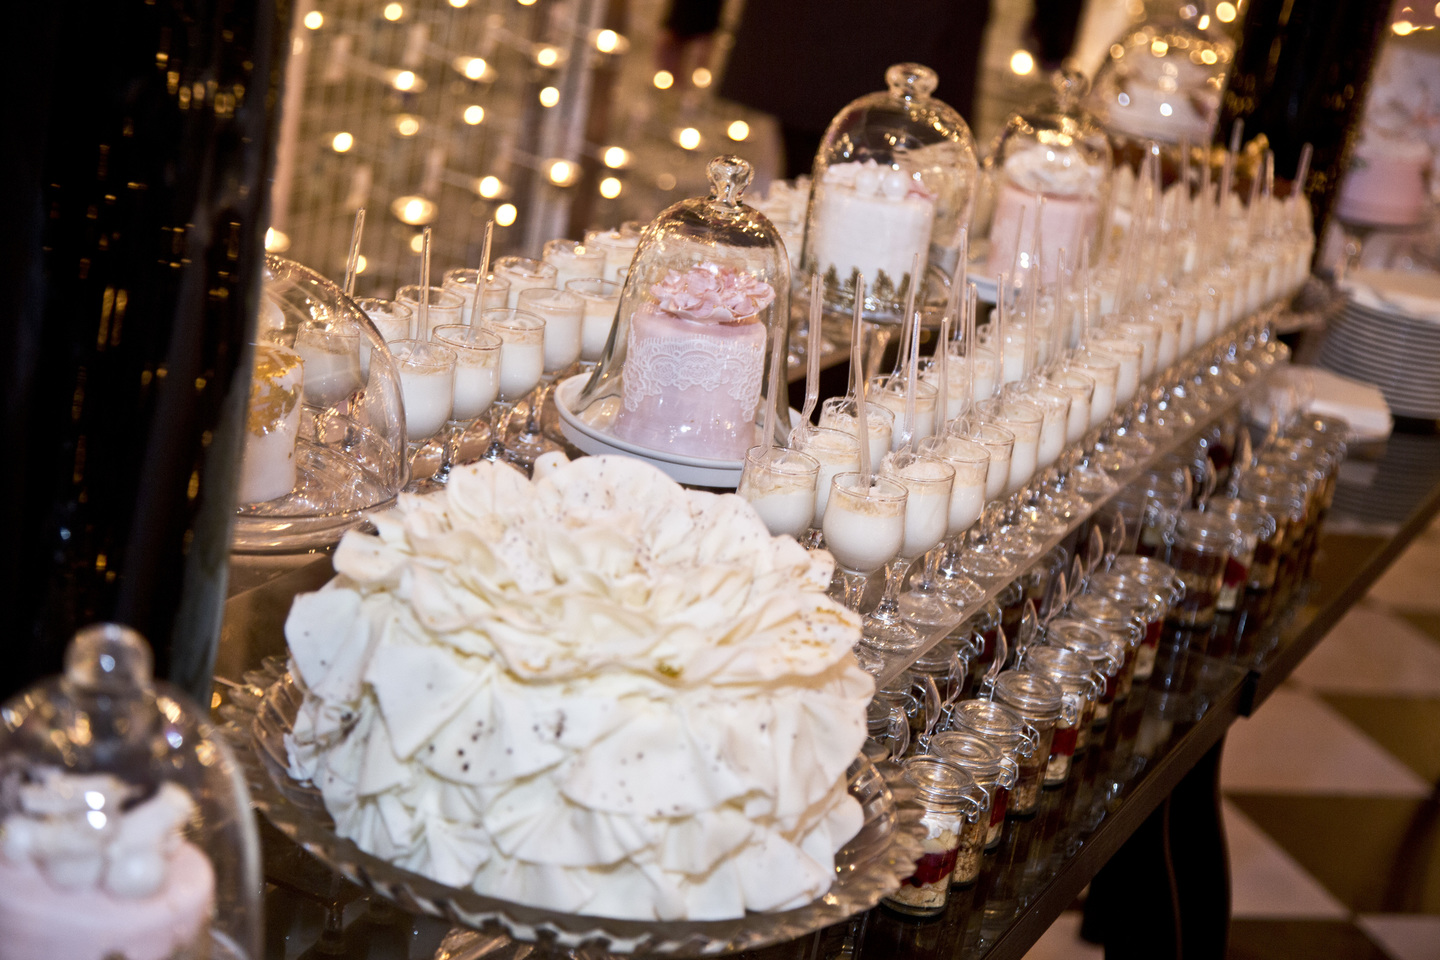 Trends In Wedding Day Buffets That You Need On Your Big Day: The Latest Wedding Dessert Buffet Trends In 2016